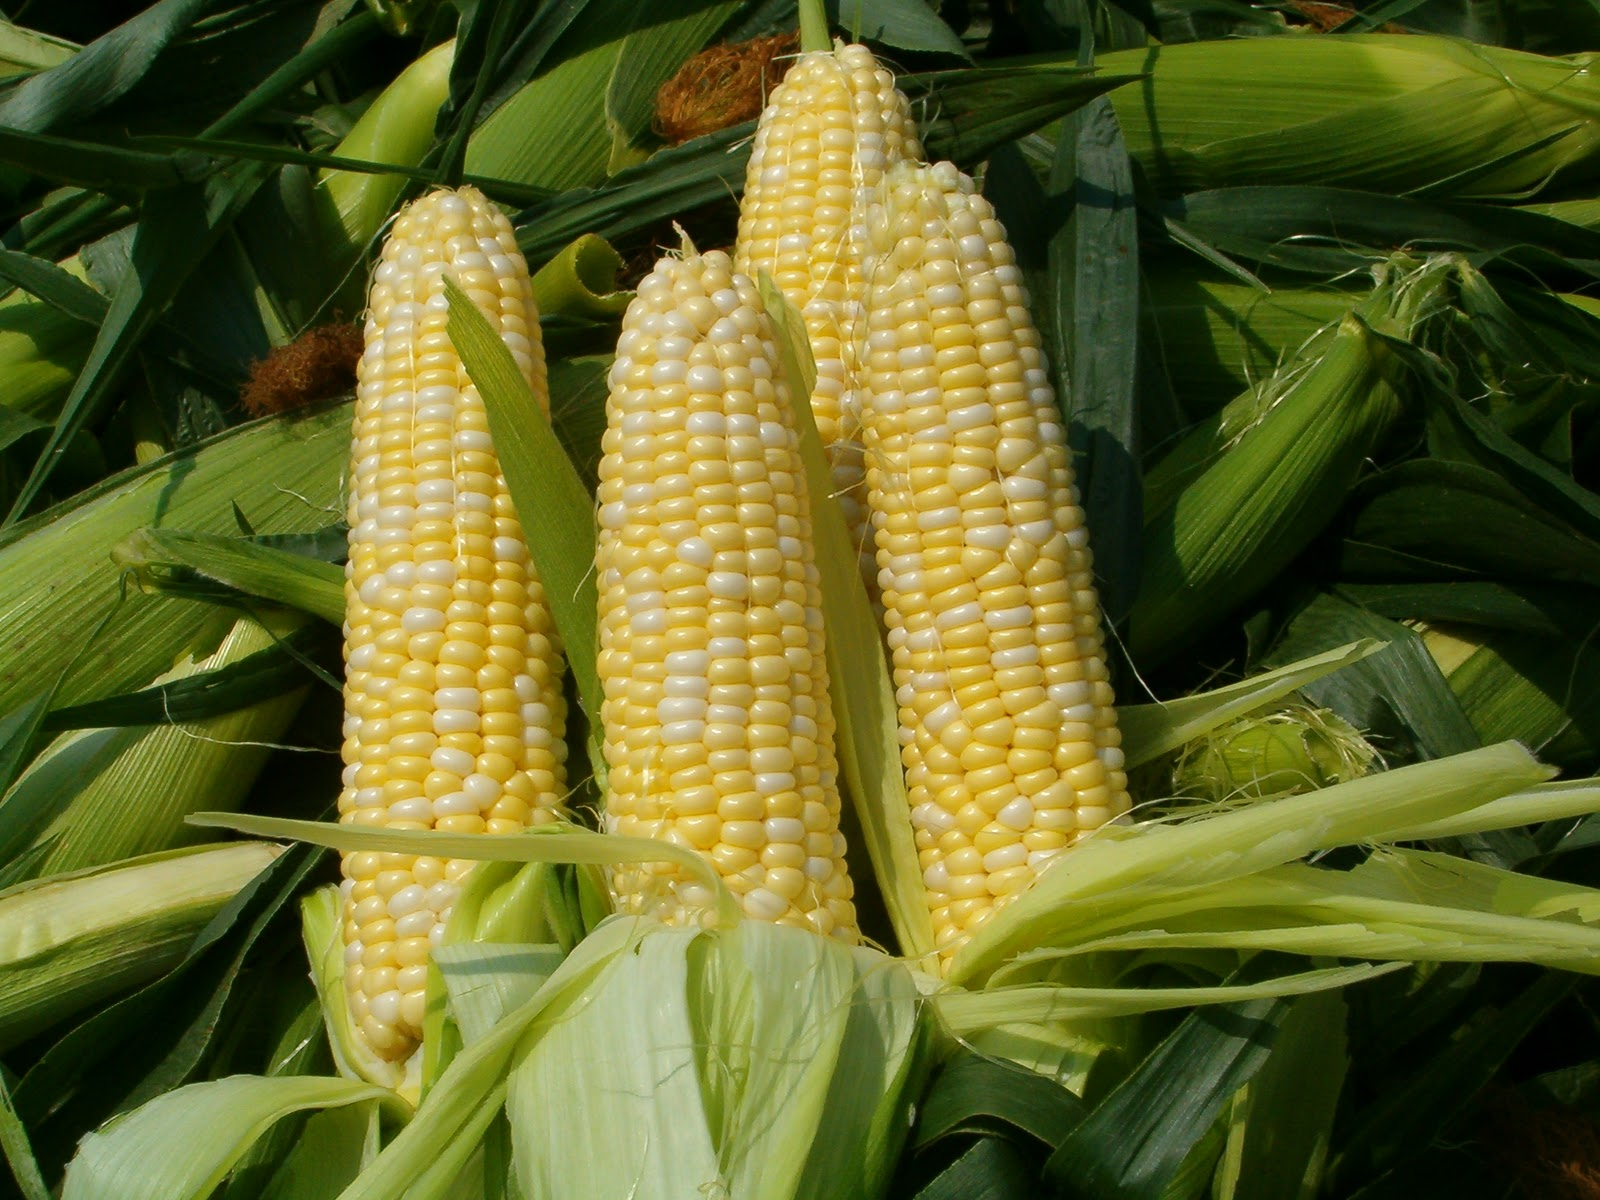 Corn Stock Photos, Images, & Pictures - 253,339 Images